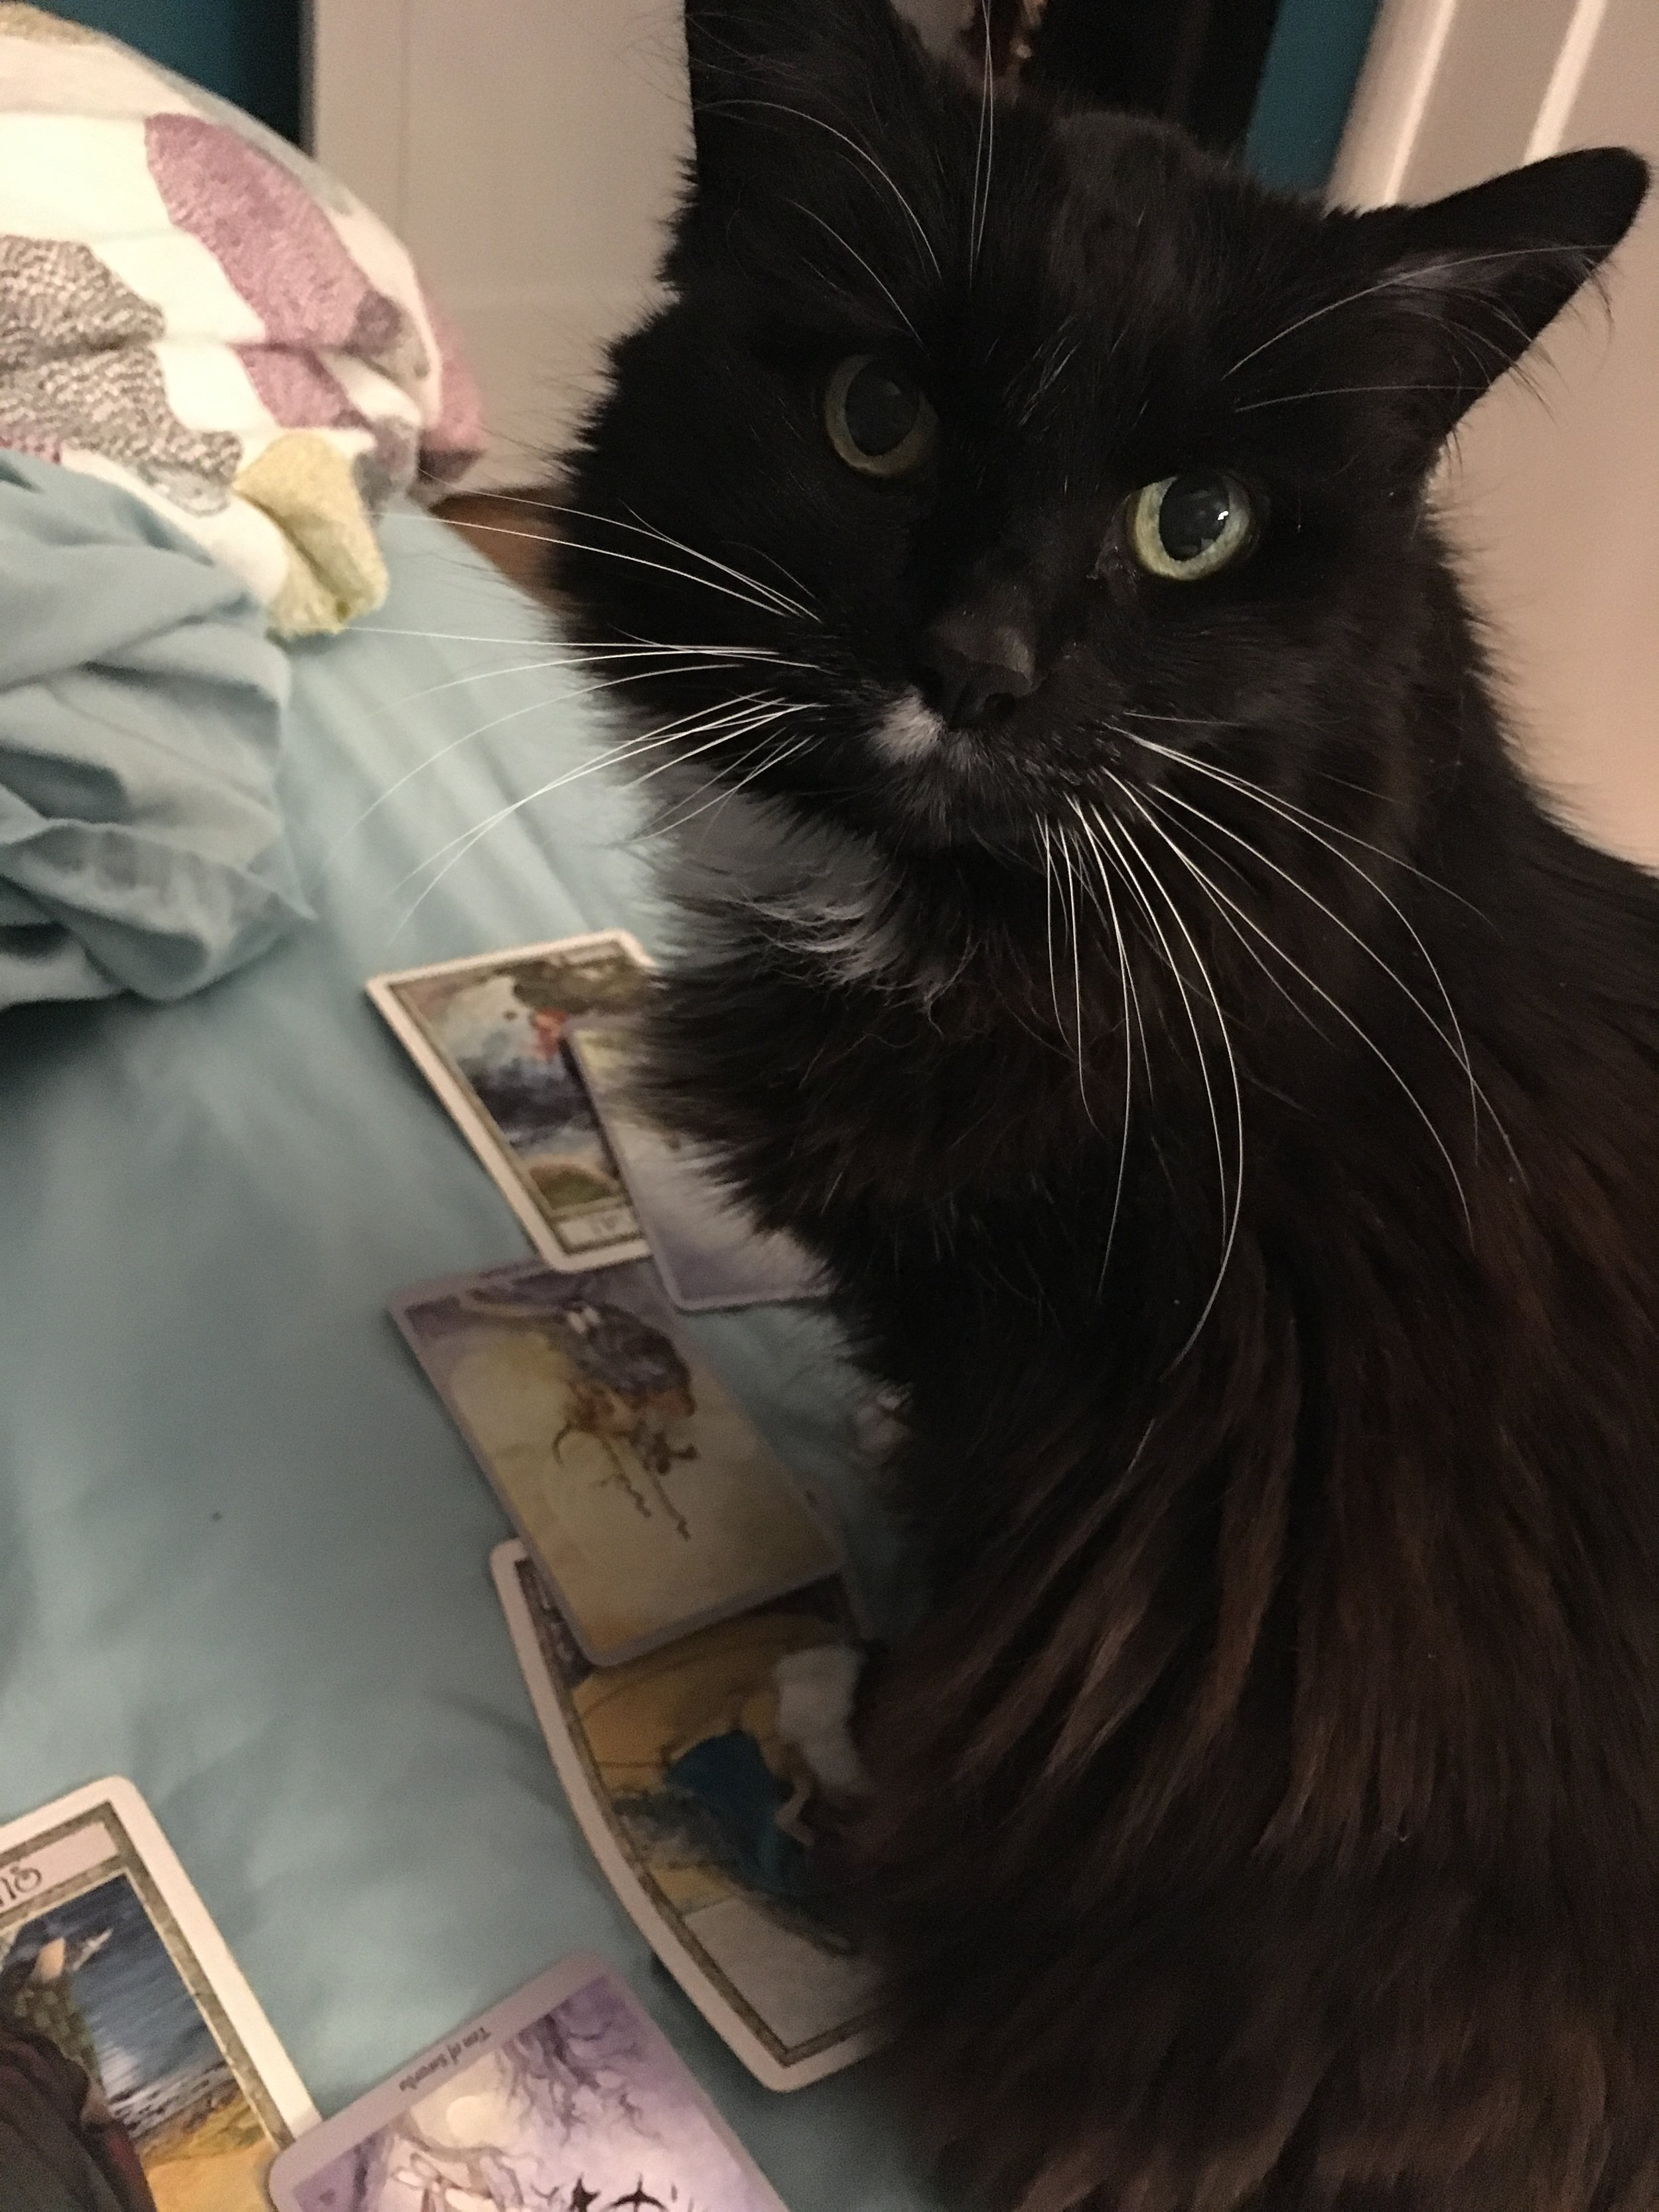 Tarot in your inbox - Kittens and amy read your cards